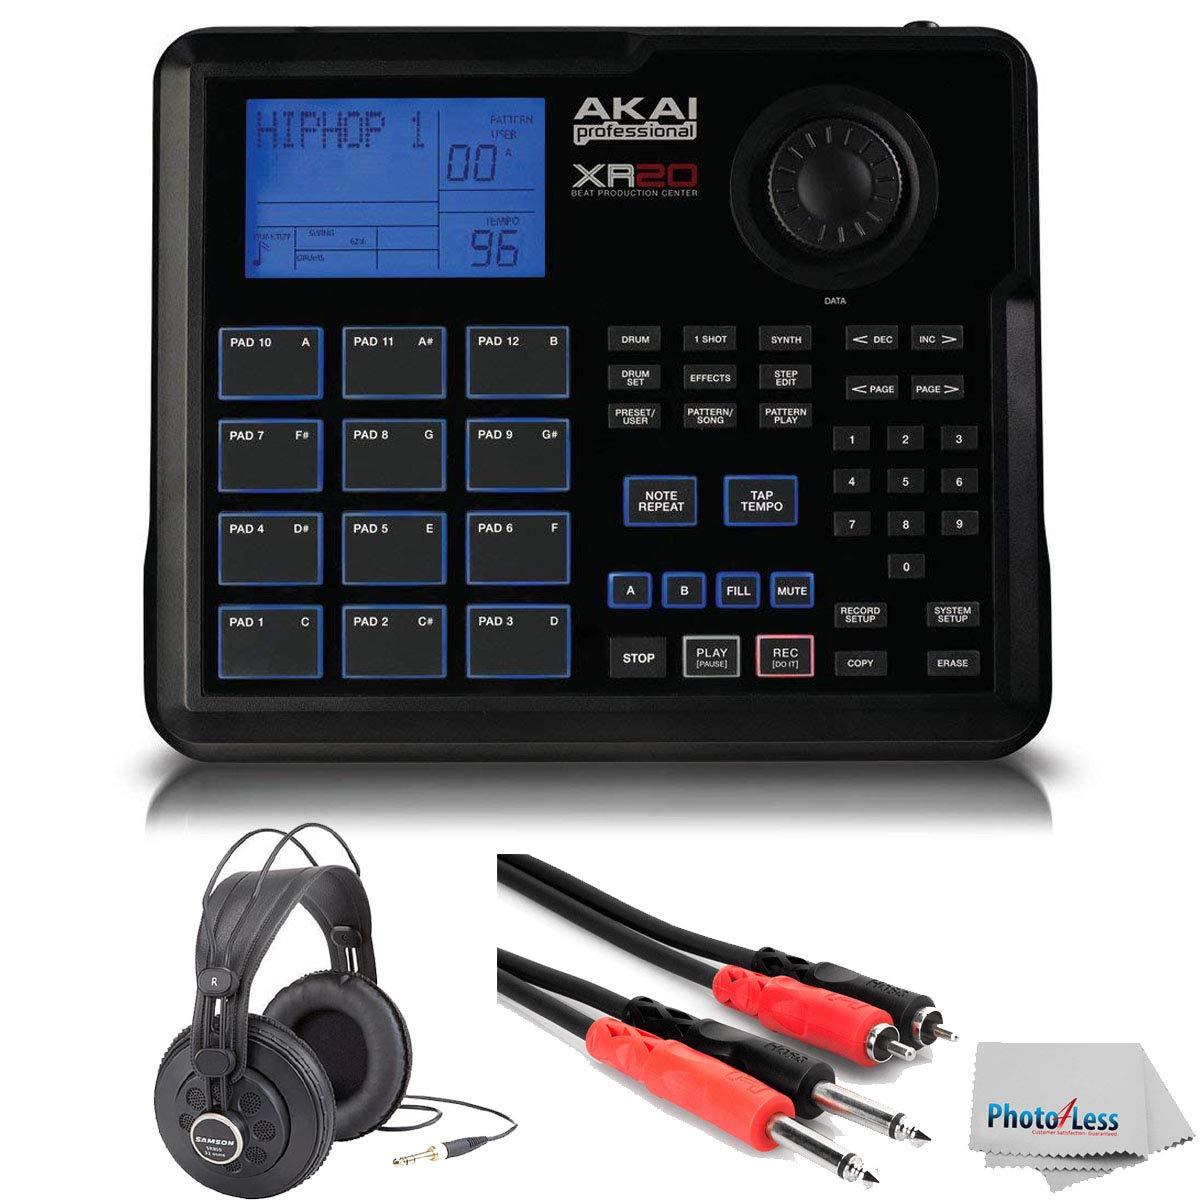 Akai Professional XR20 | Beat Production Station Drum Machine + Studio Headphones + Stereo Interconnect Cable & Clean Cloth by Akai